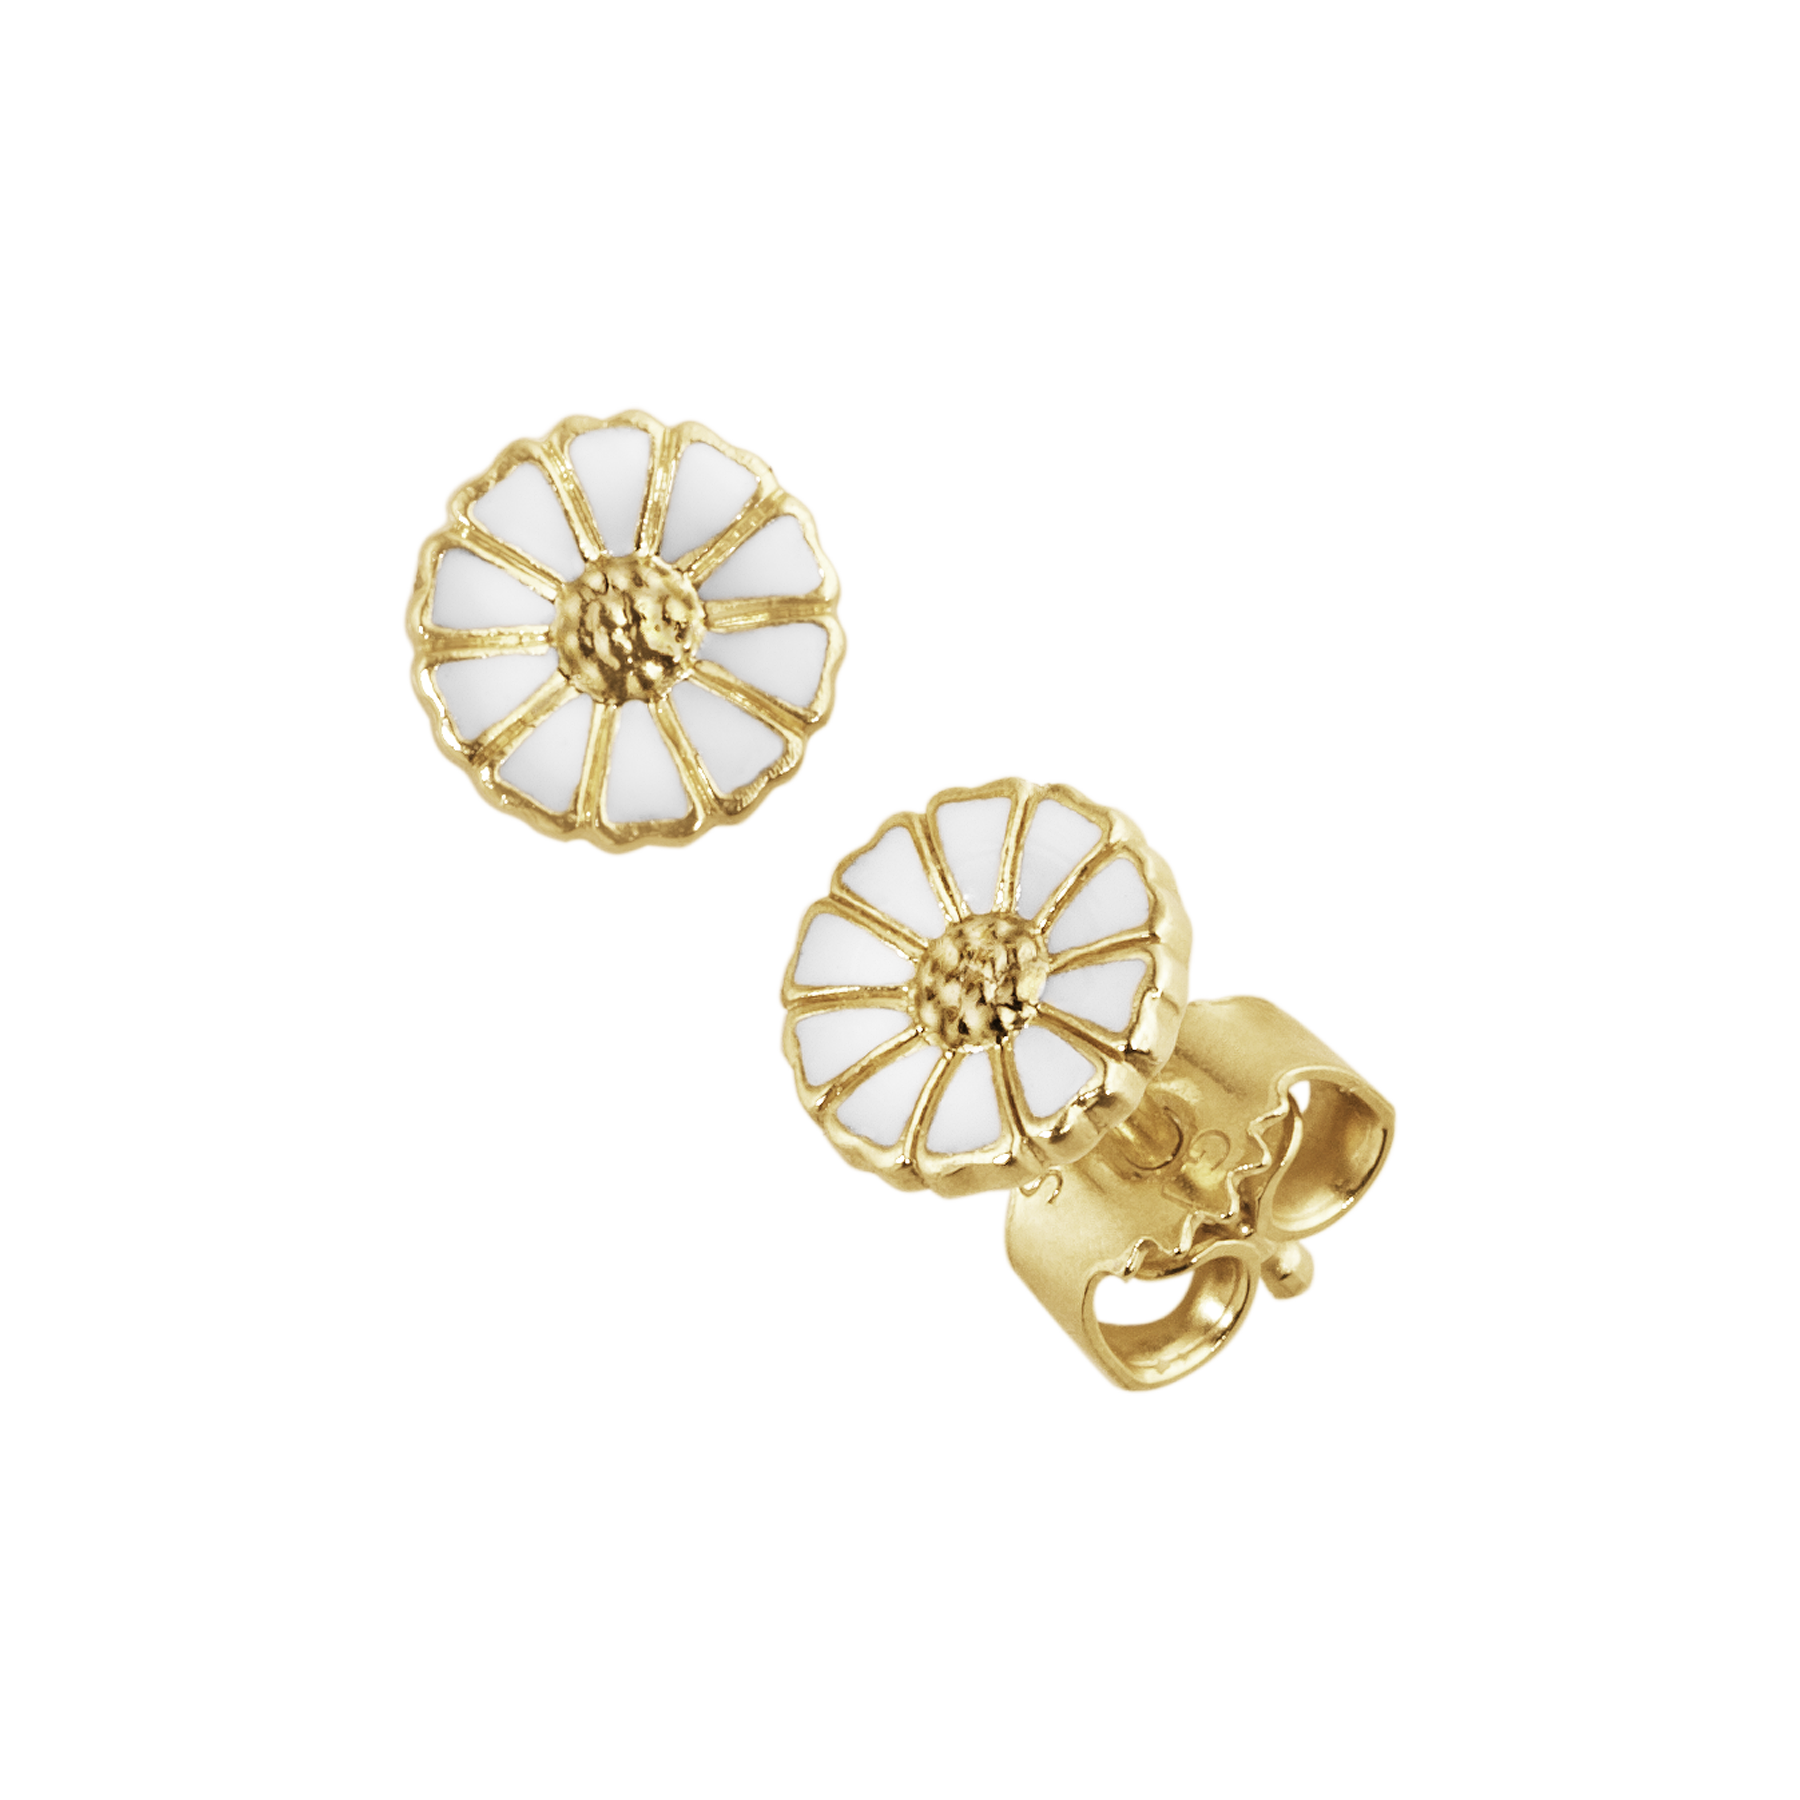 Daisy earrings gold plated